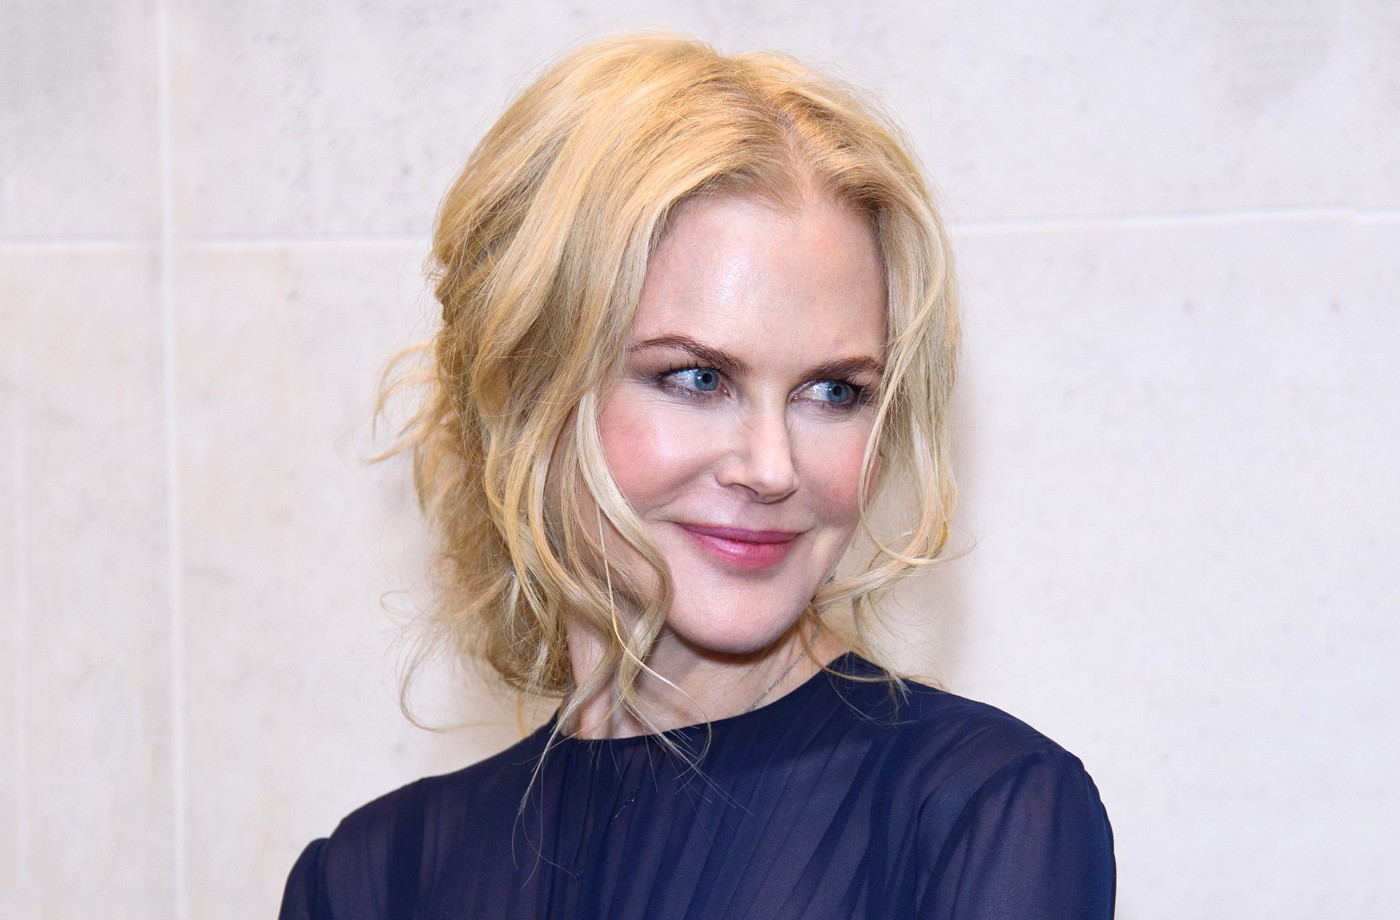 Pictures Nicole Kidman naked (68 photos), Tits, Paparazzi, Instagram, in bikini 2019